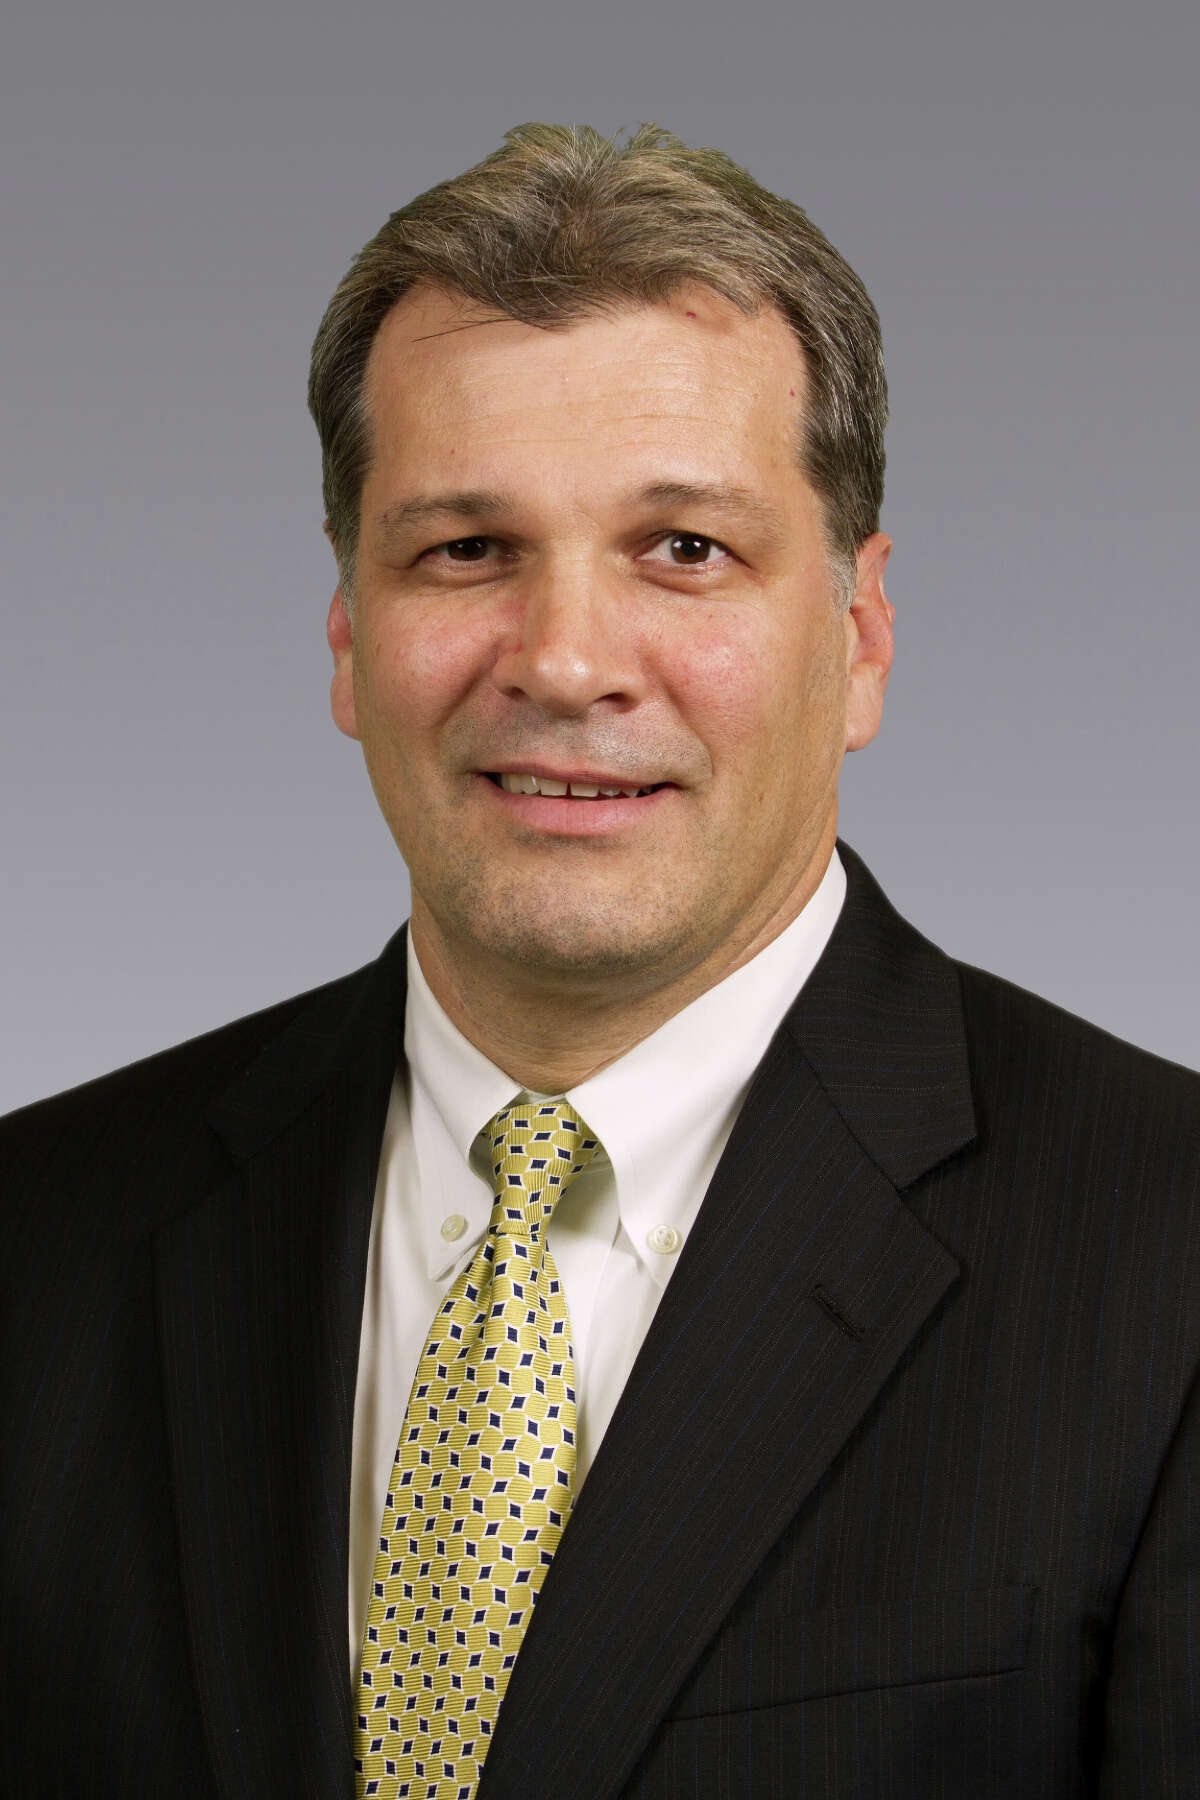 Bill Hickl, Texas managing director of UHY Advisors, has been named to the University of Houston Alumni board of directors.